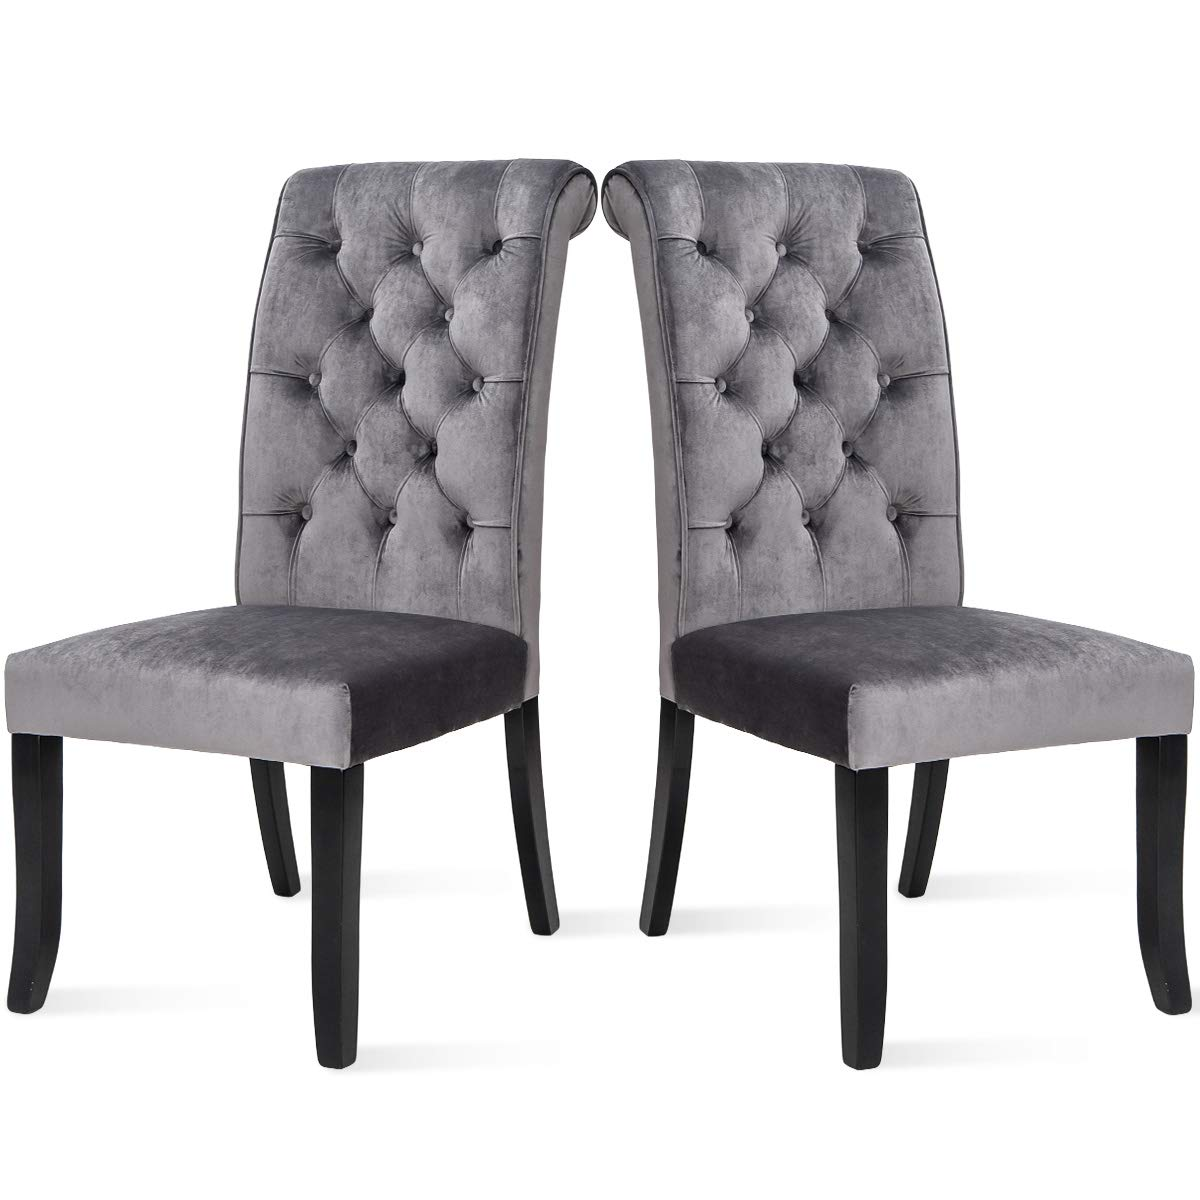 Set of 2 Fabric Dining Chair, Tufted Armless Upholstered Accent Chair with Solid Wood Legs Grey